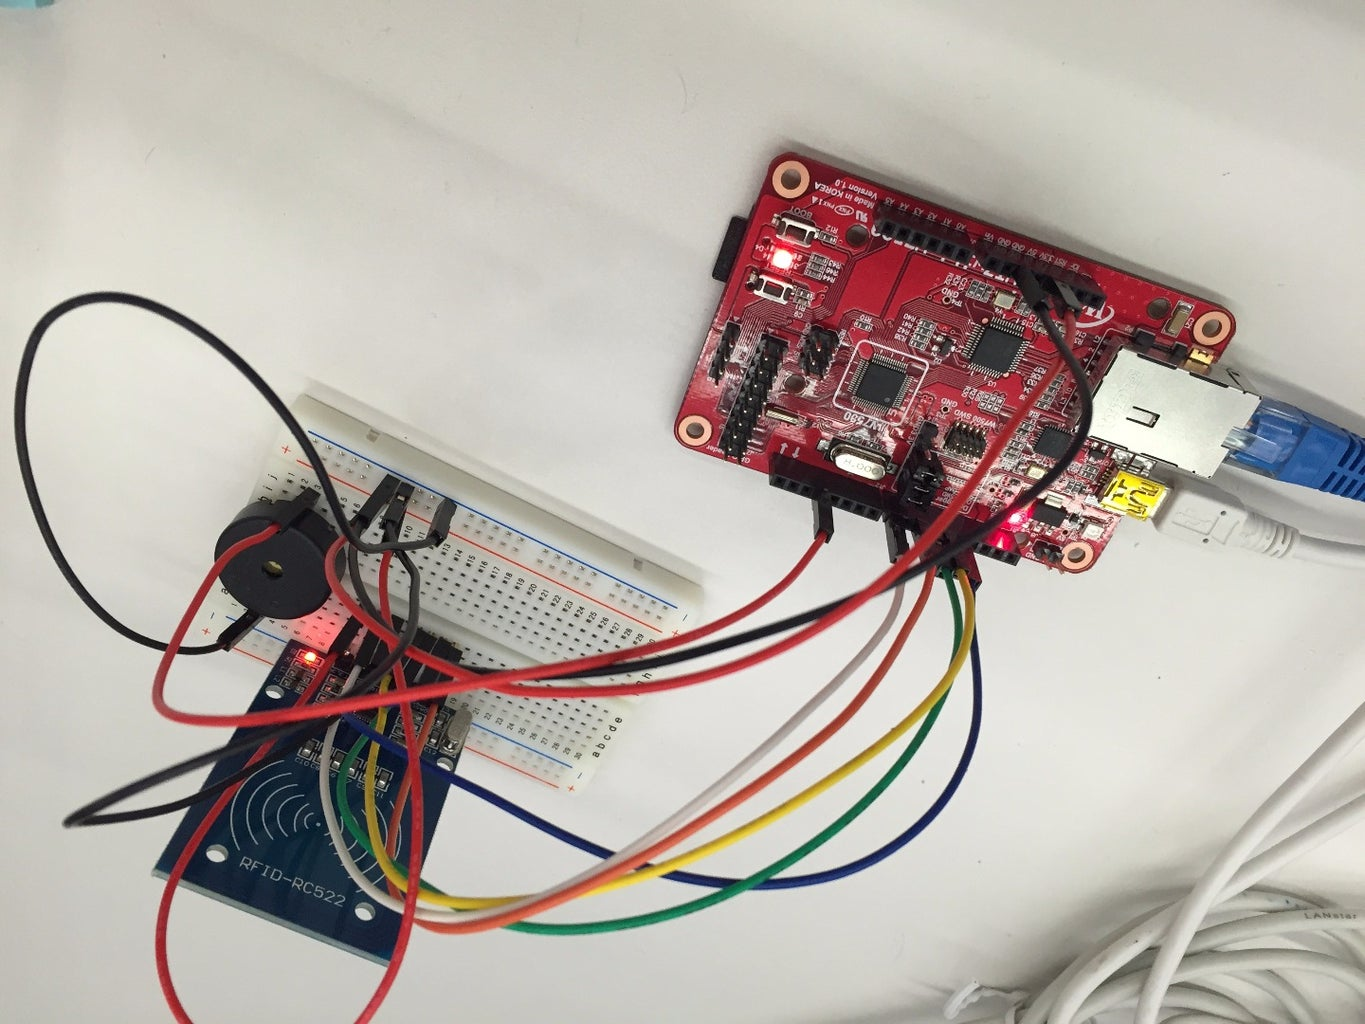 [Home Automation] Version 2 : Check the RFID Tag to Using Simple Web Server.